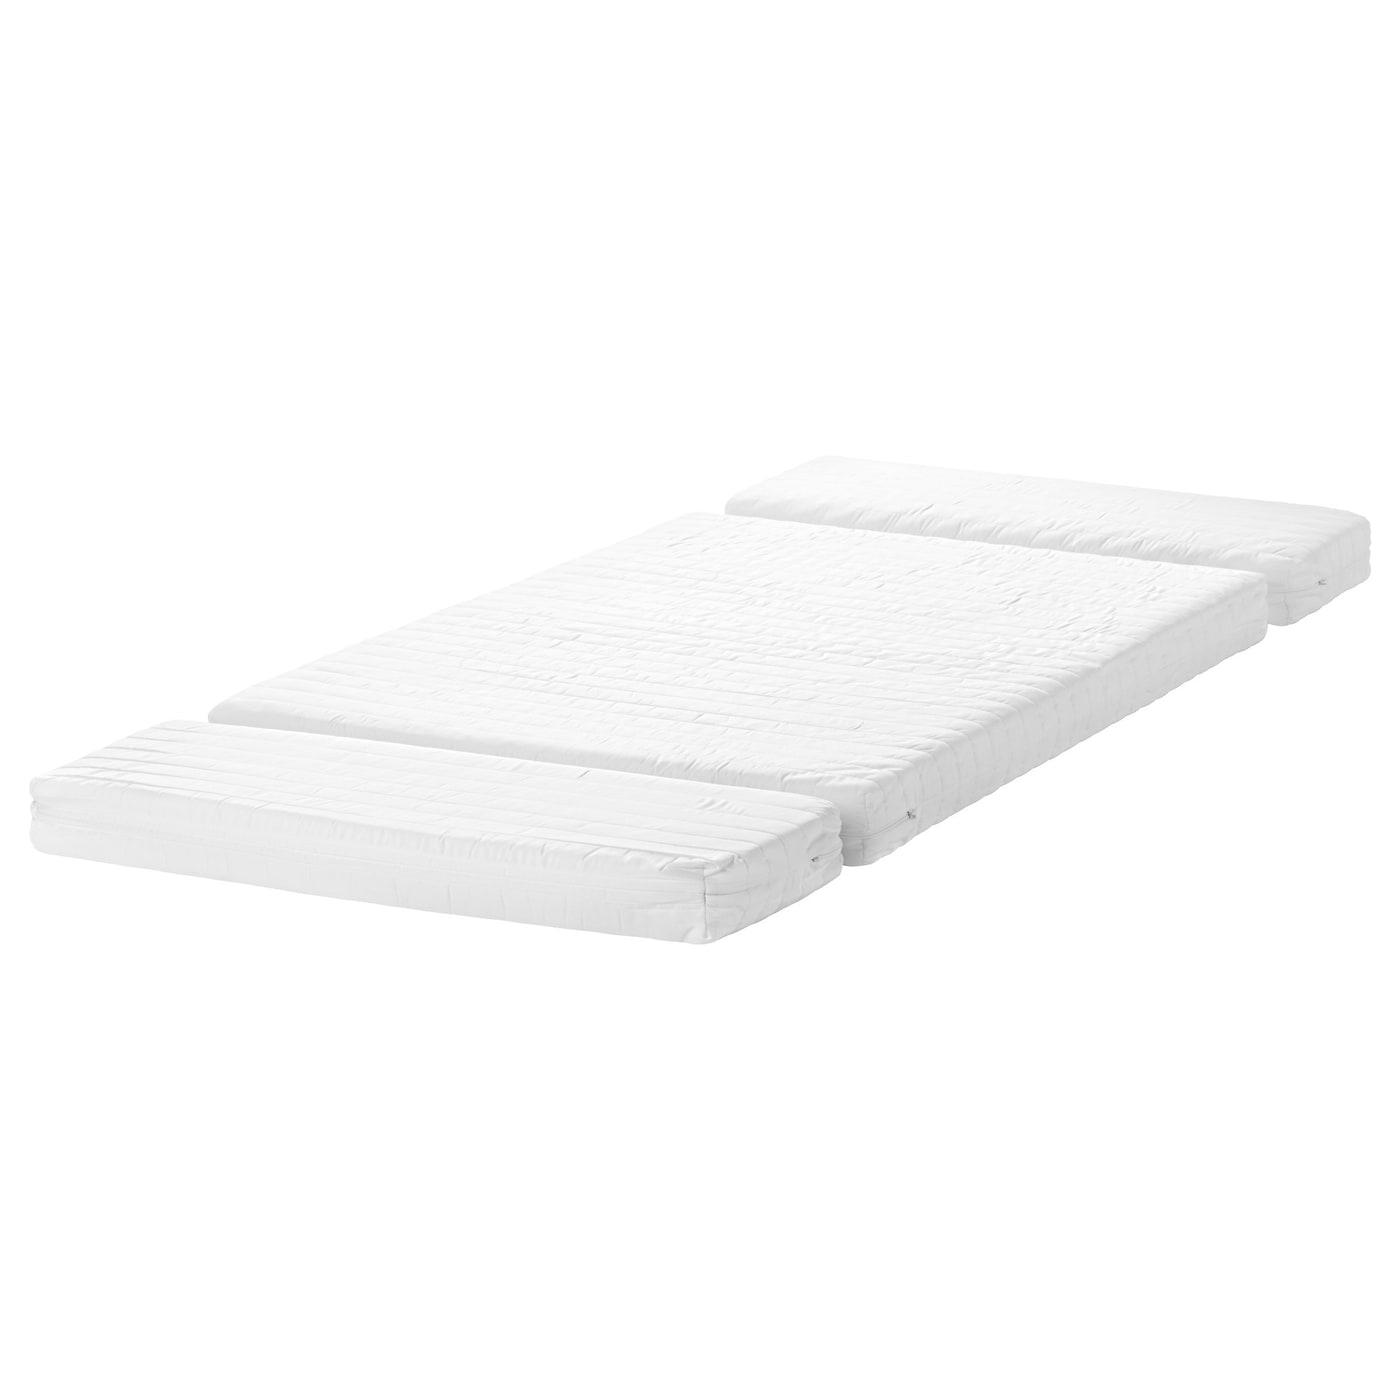 Ikea toddler bed white - Ikea Vyssa Snosa Mattress For Extendable Bed